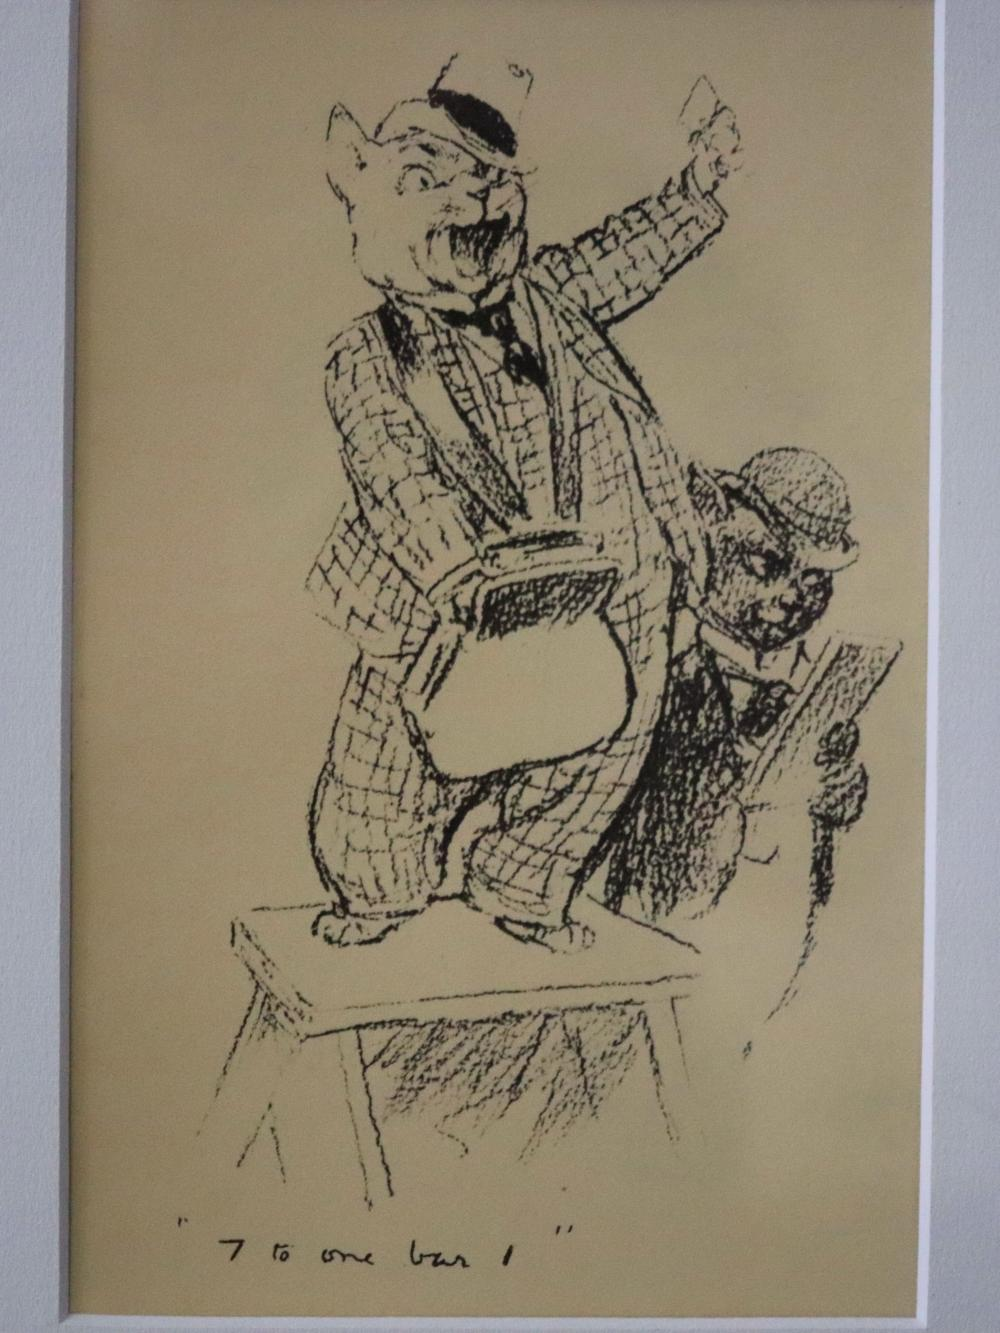 NORMAN LINDSAY'S BOOK PLATE PRINT 7 TO 1 BAR I